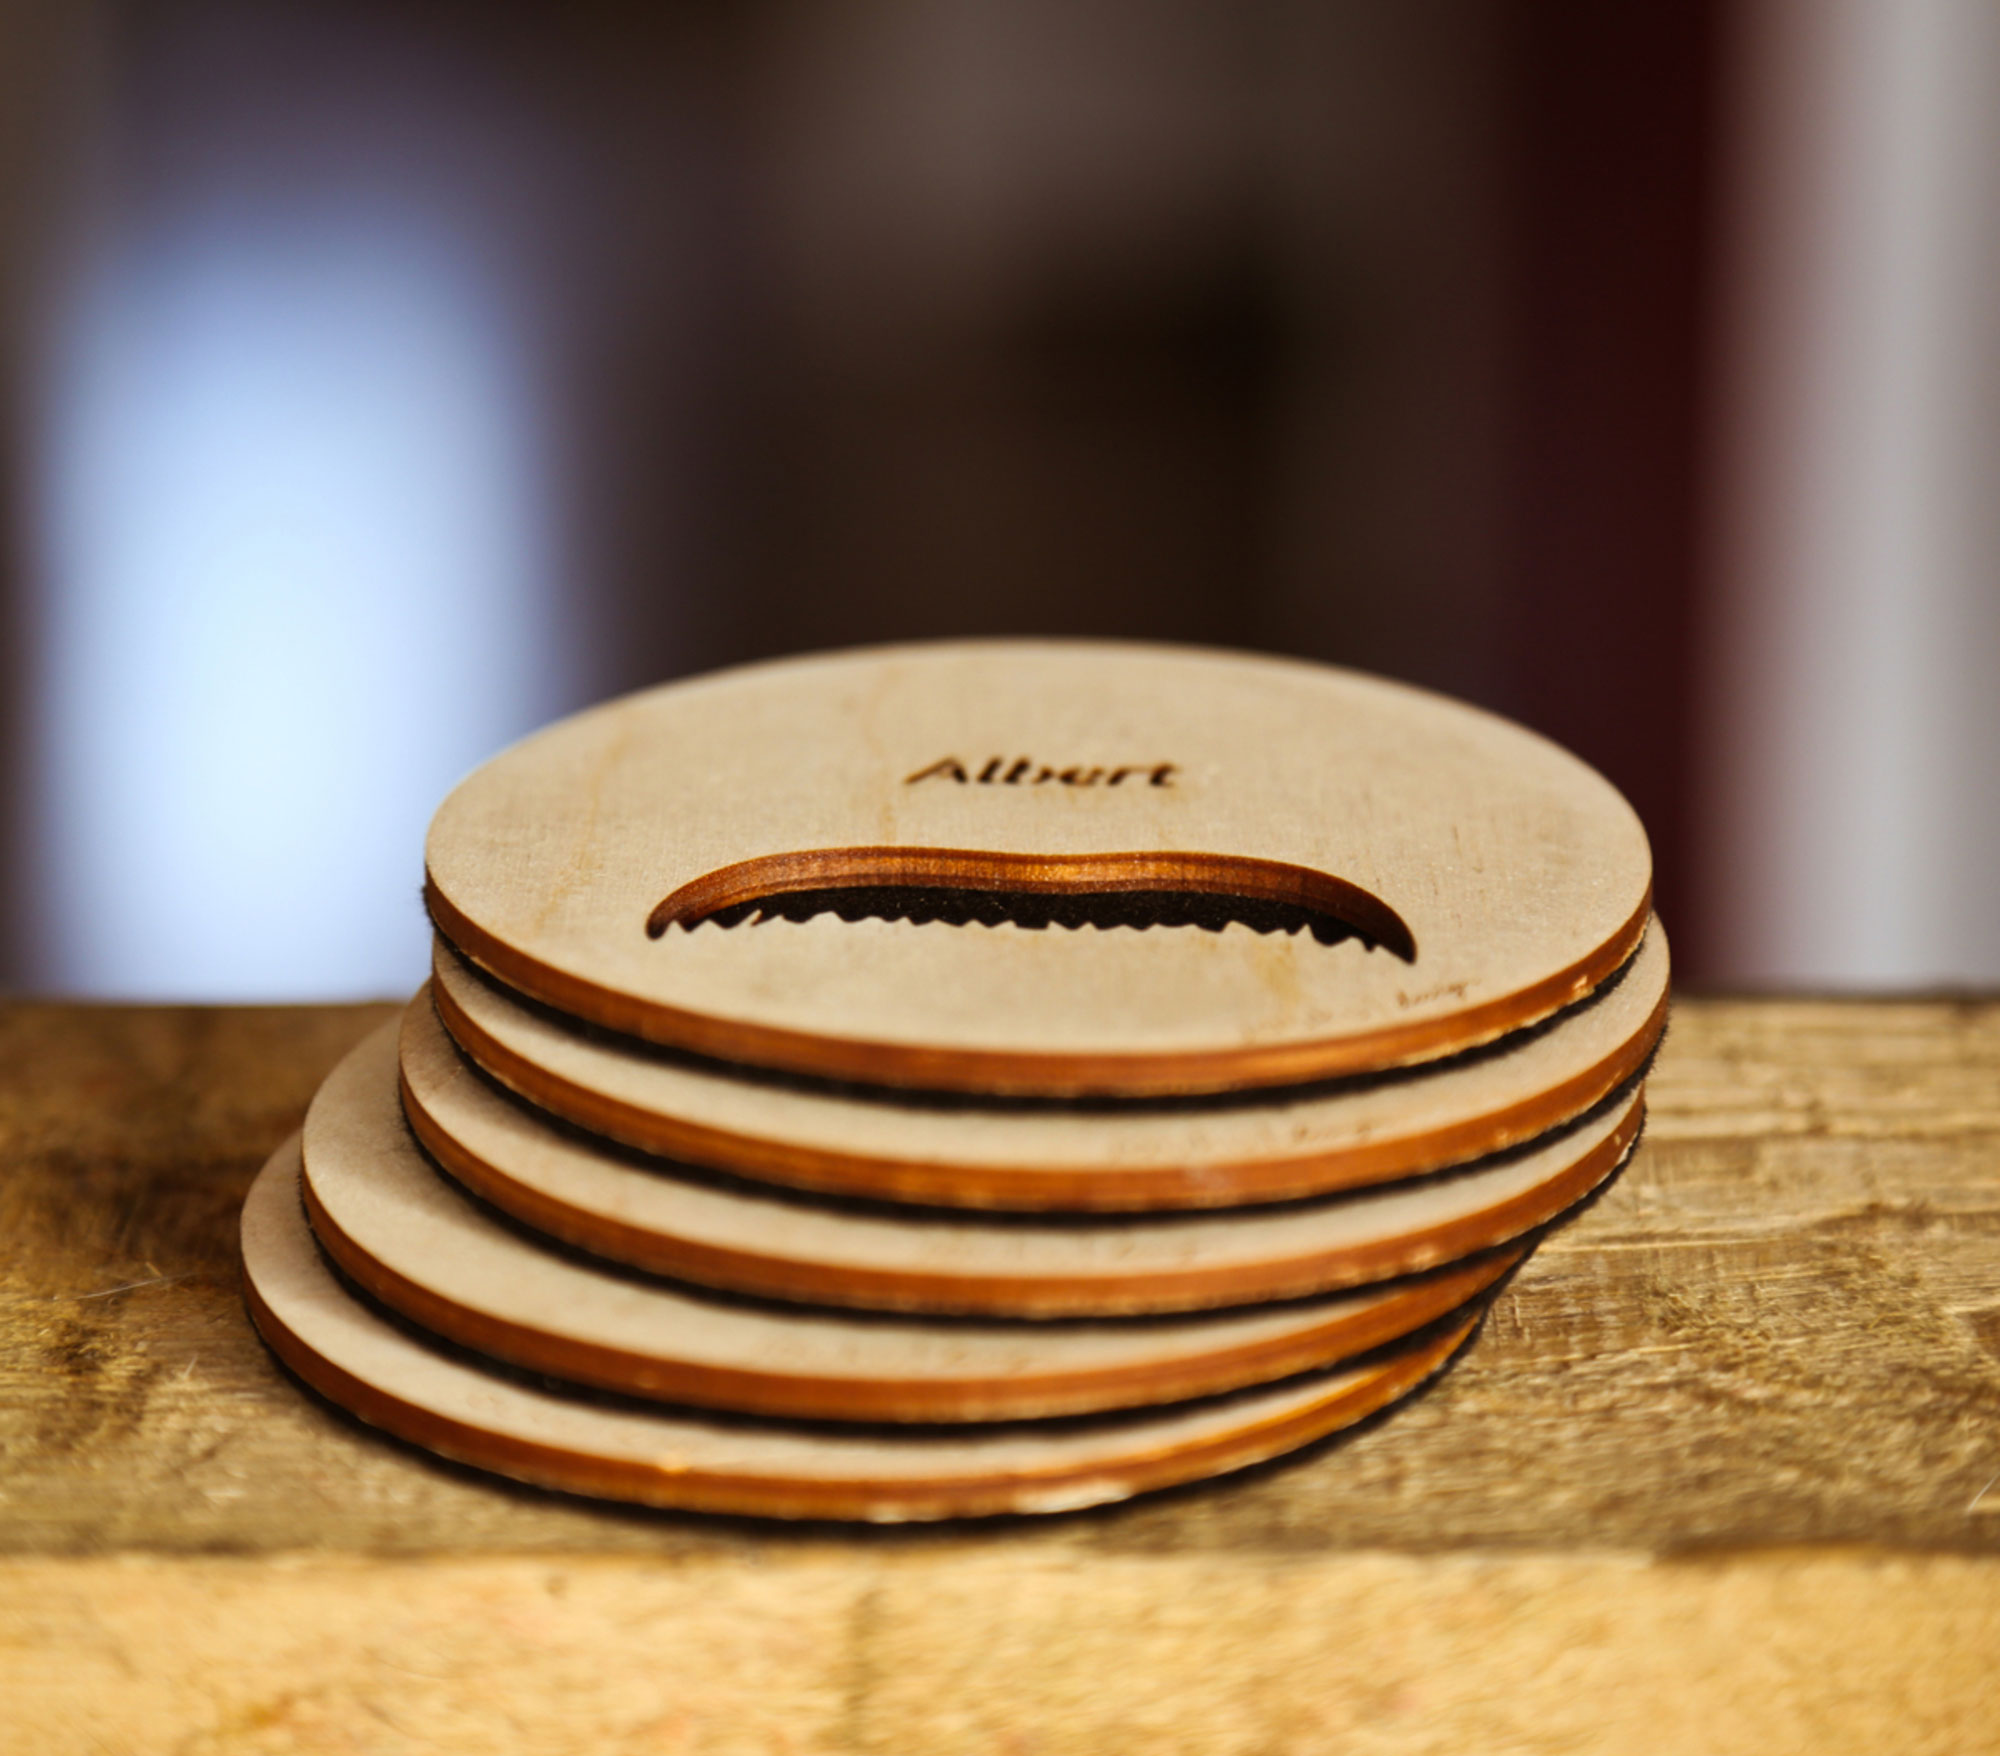 menswear-fashion-lifestyle-mustache-coasters-ambiente-albert